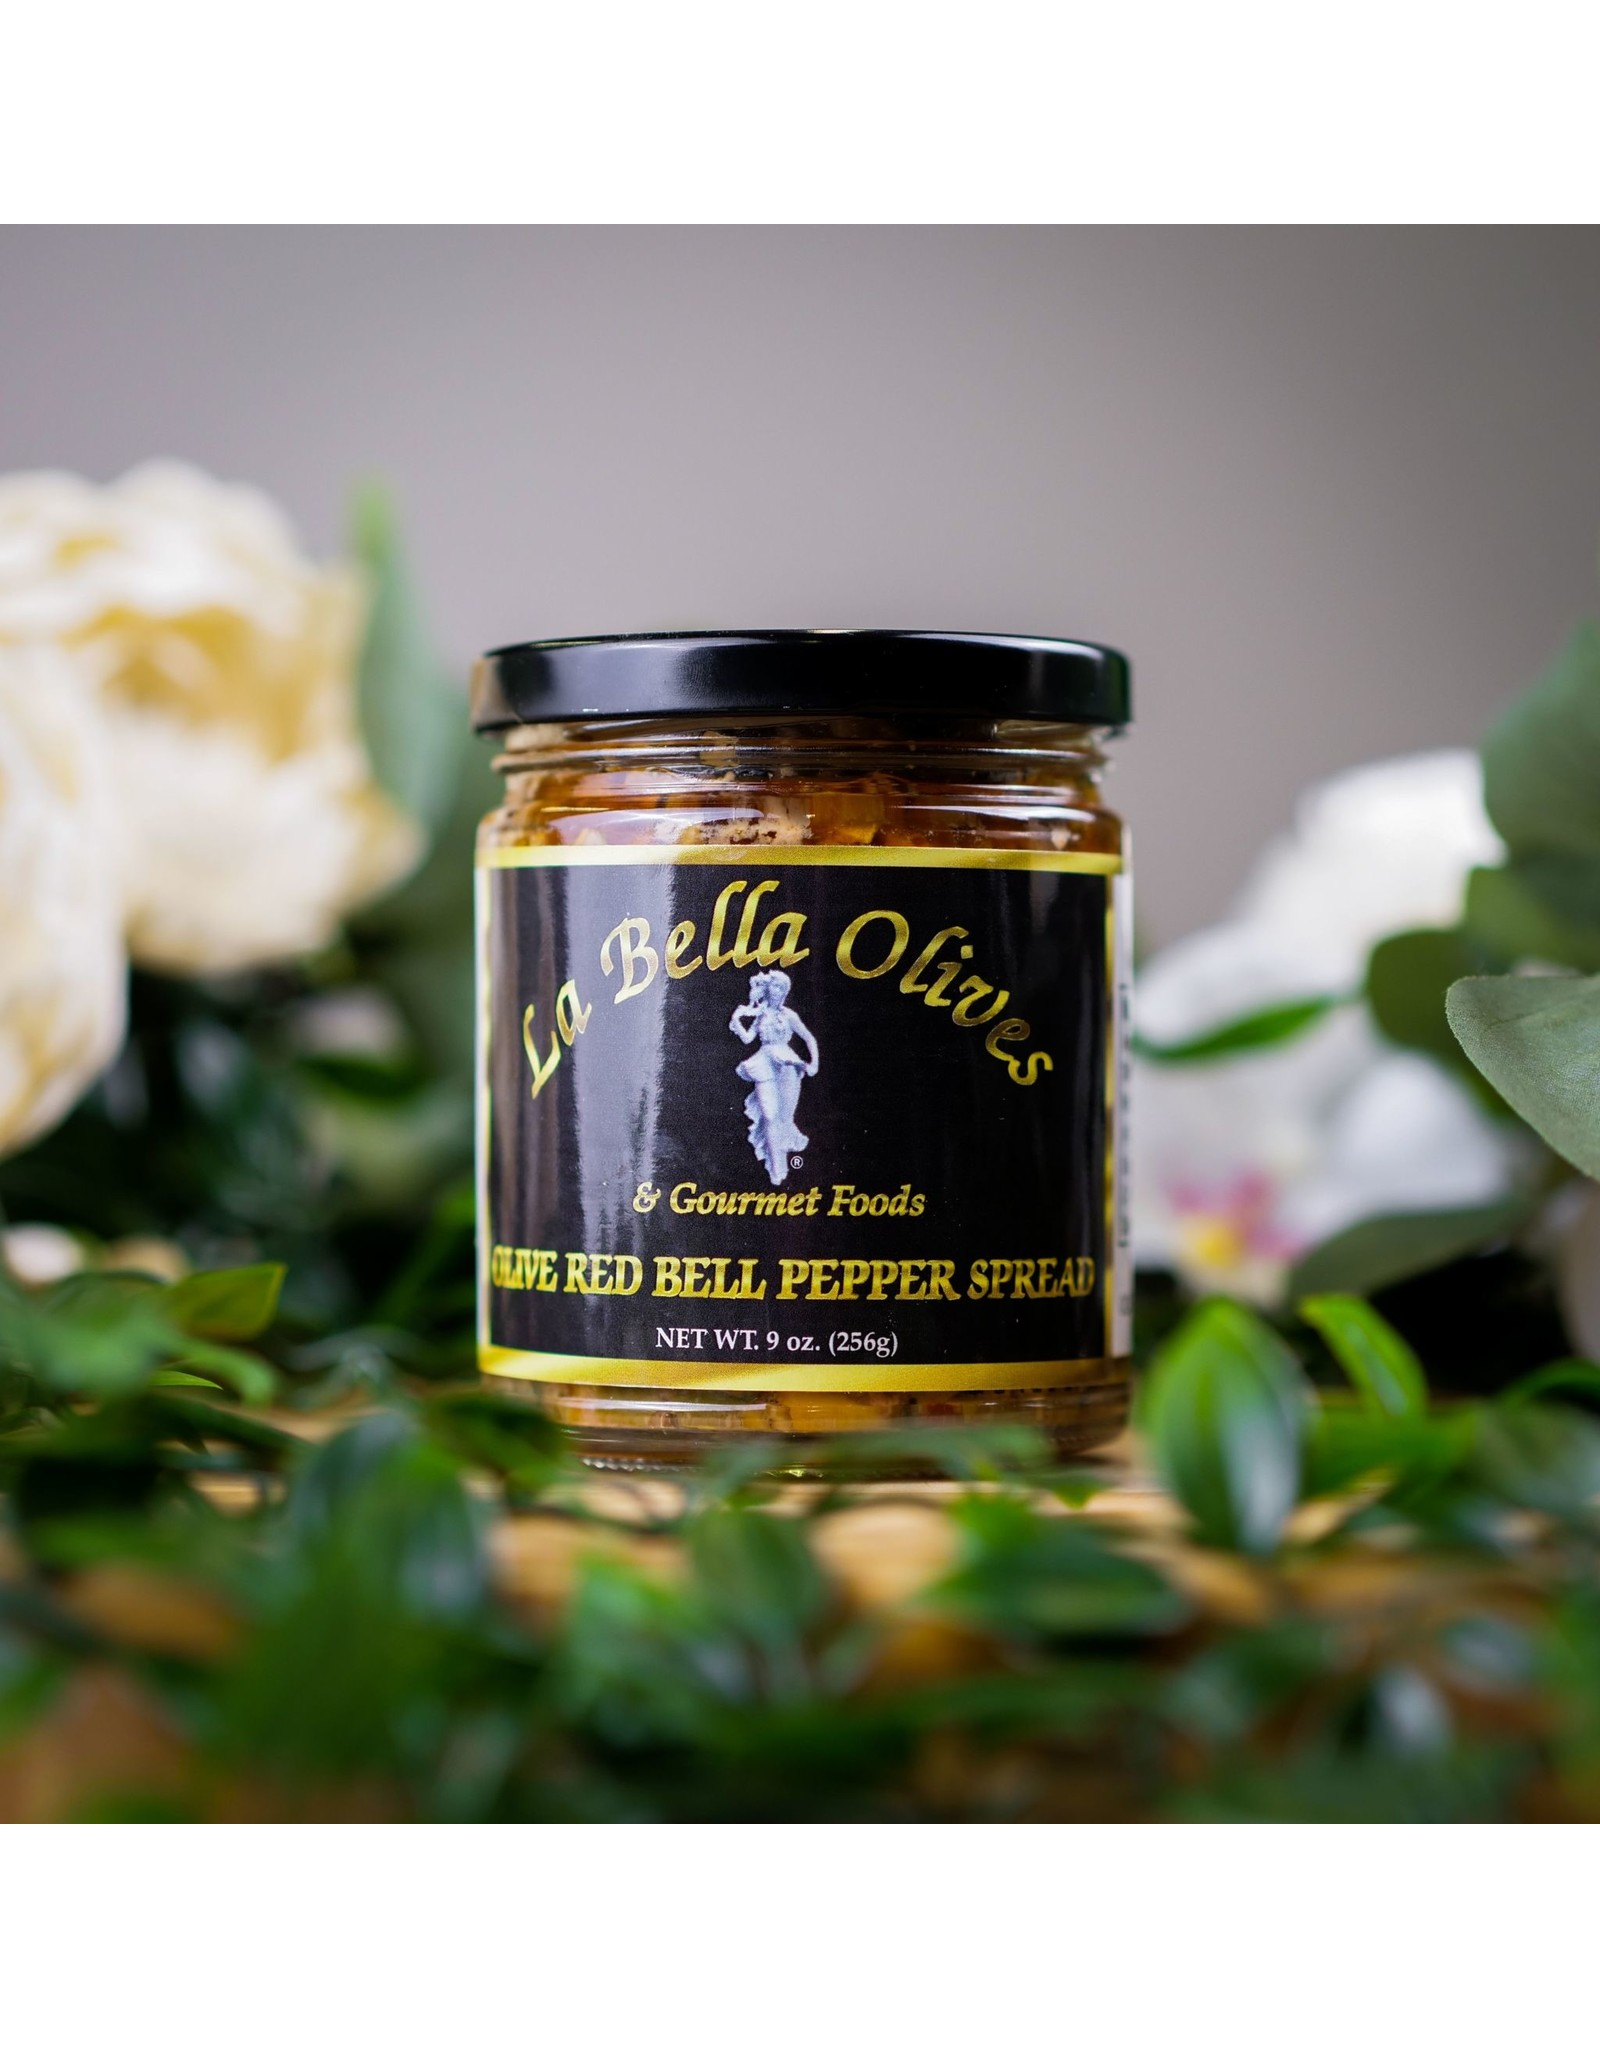 OLIVE RED BELL PEPPER SPREAD